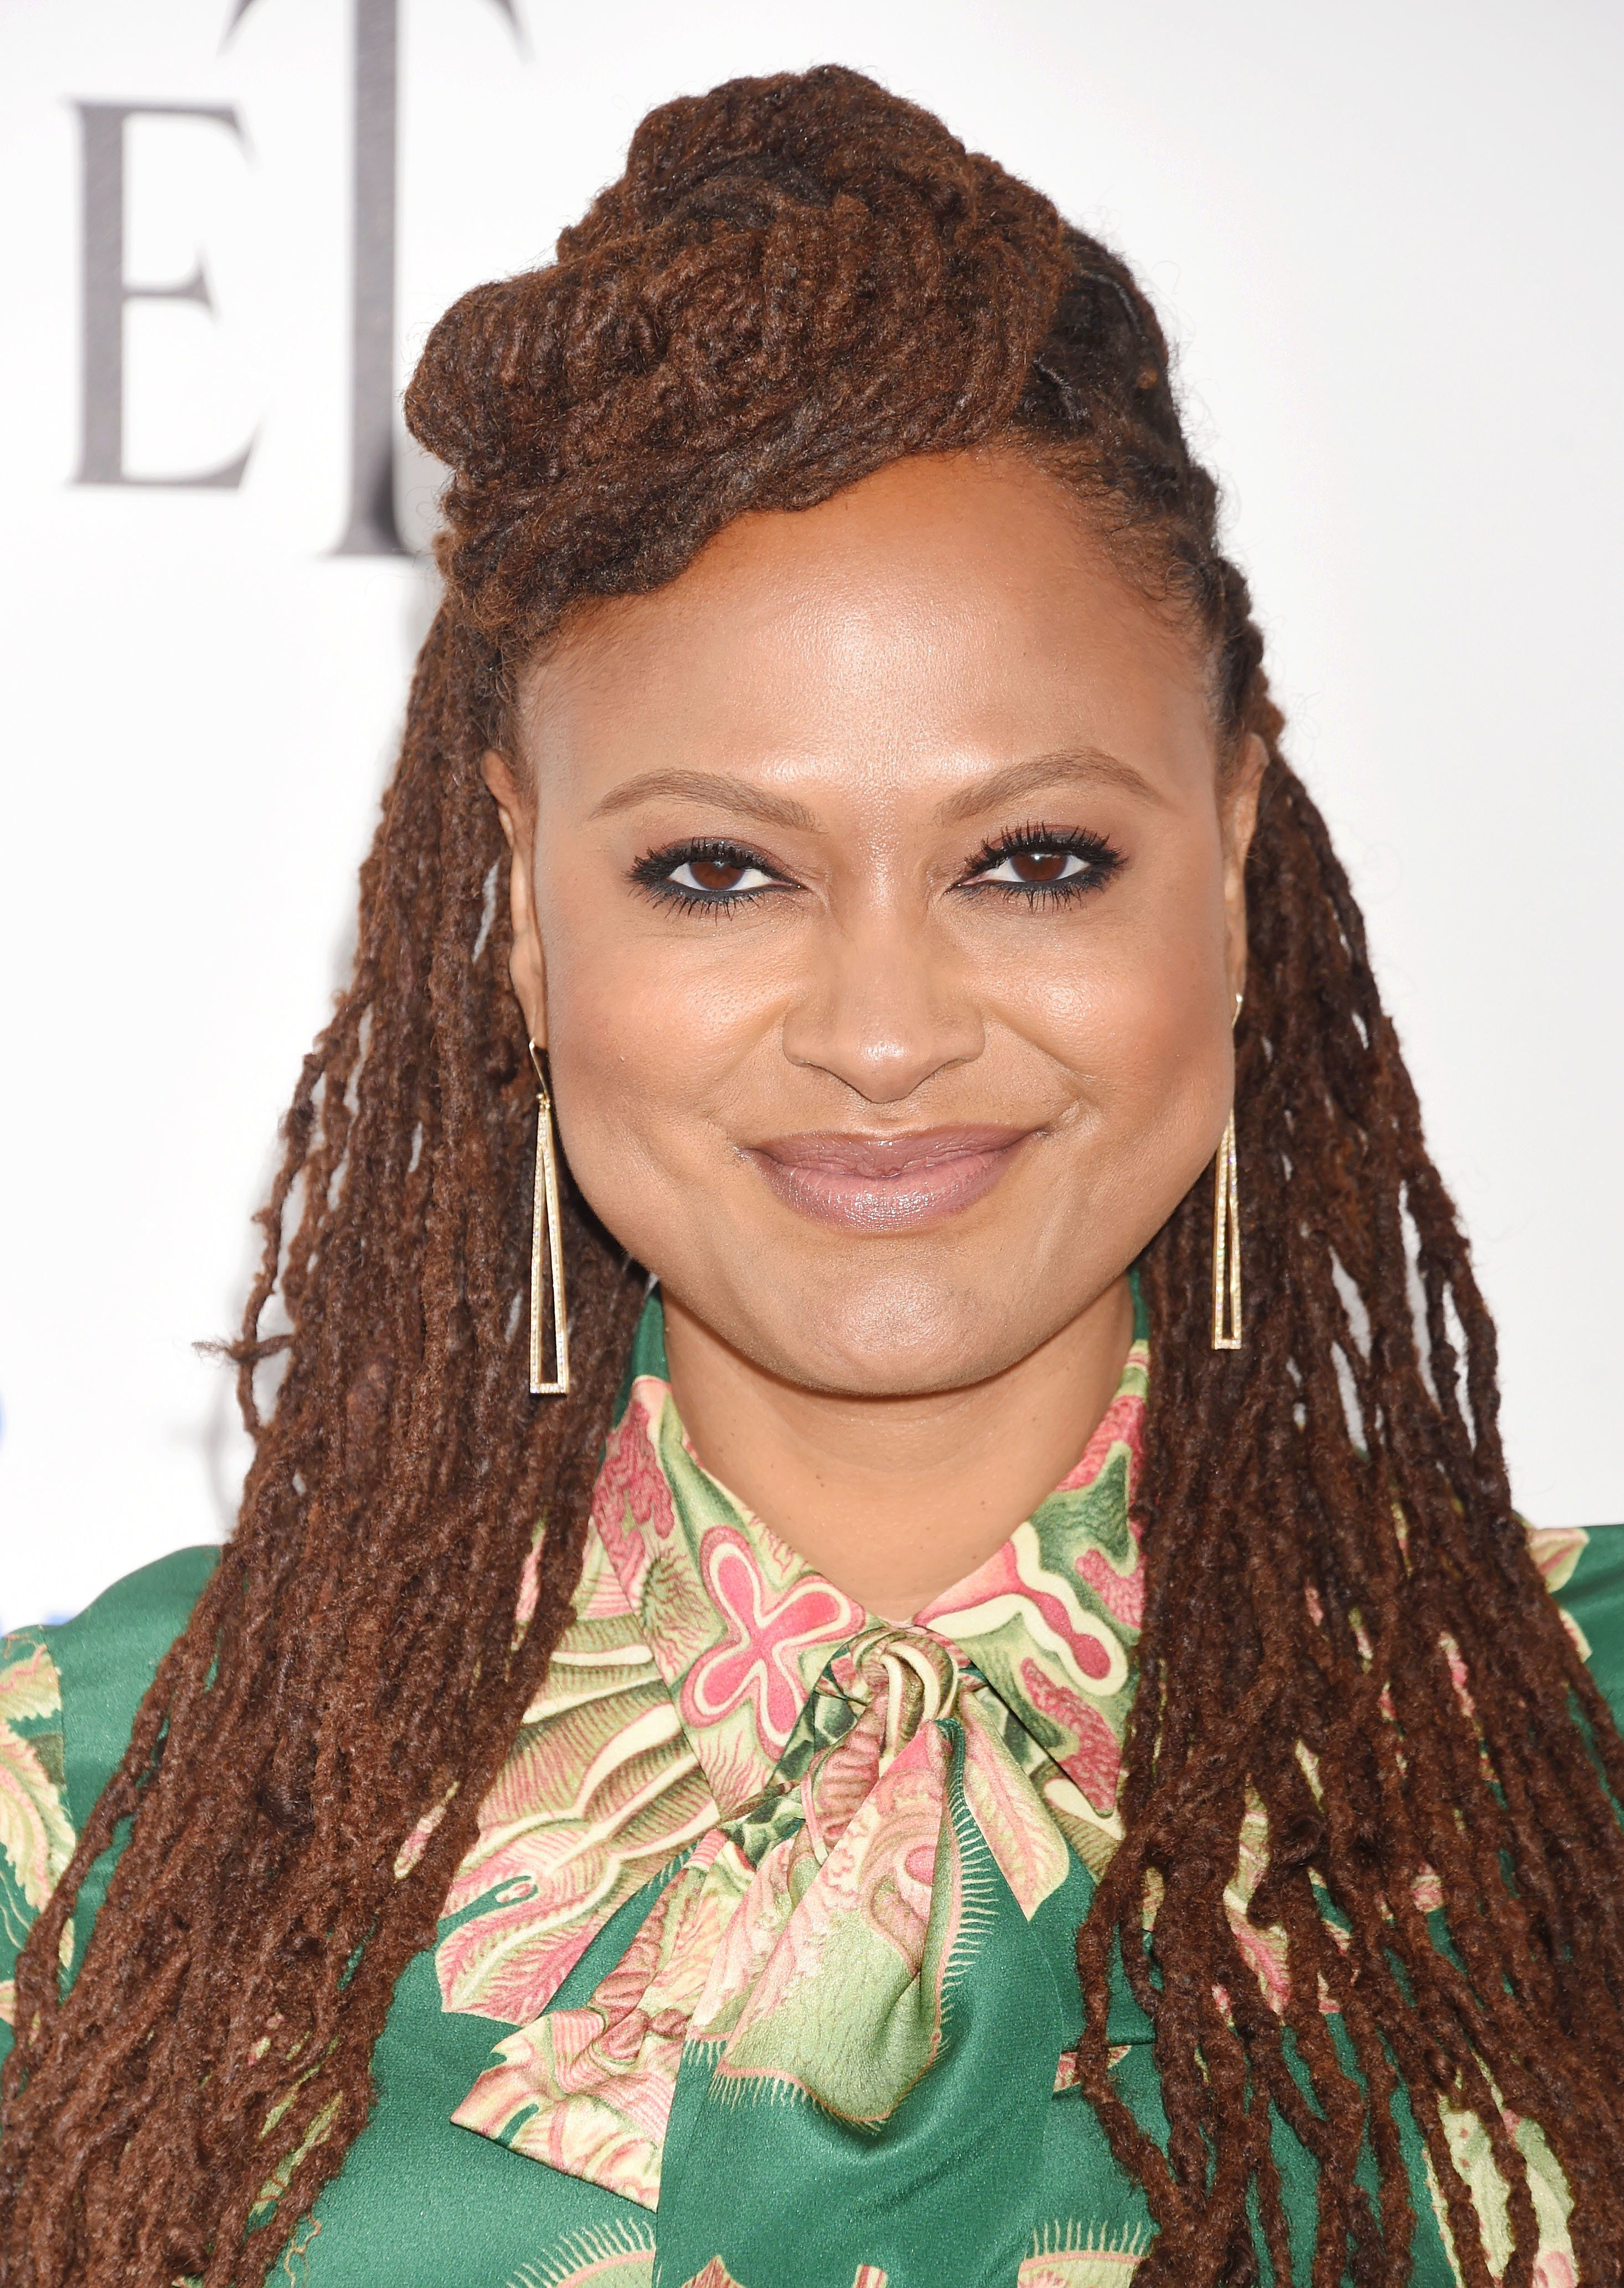 SANTA MONICA, CA - FEBRUARY 25: Director Ava DuVernay attends the 2017 Film Independent Spirit Awards at the Santa Monica Pier on February 25, 2017 in Santa Monica, California. (Photo by Jeffrey Mayer/WireImage)